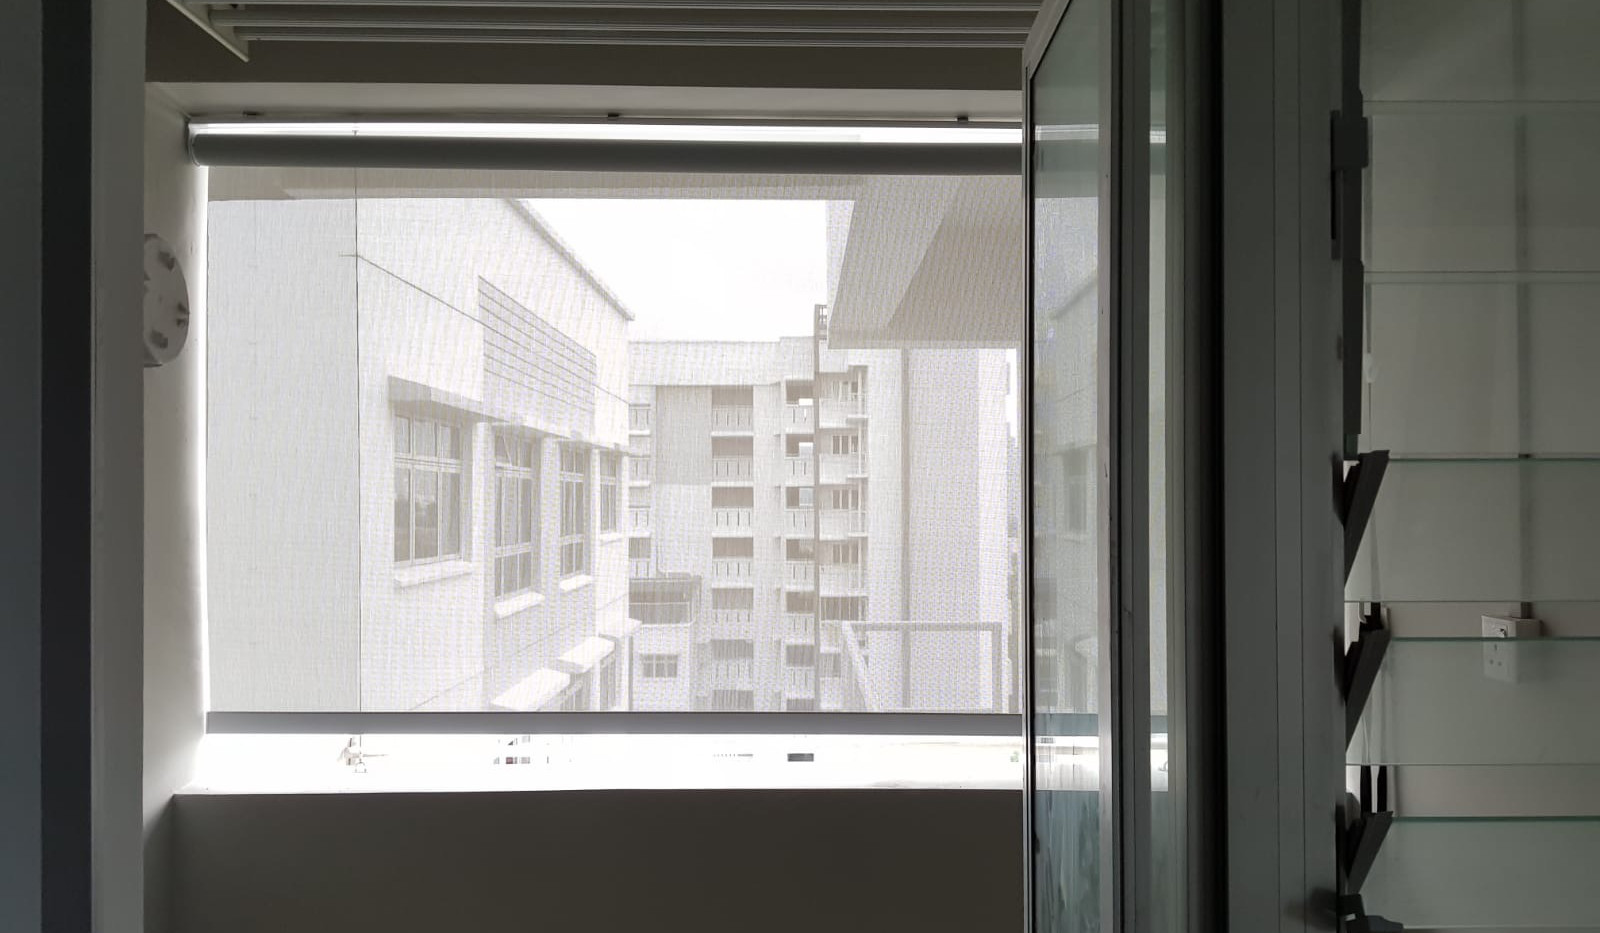 Outdoor Roller Blinds for Service Yard - END CURTAIN Singapore